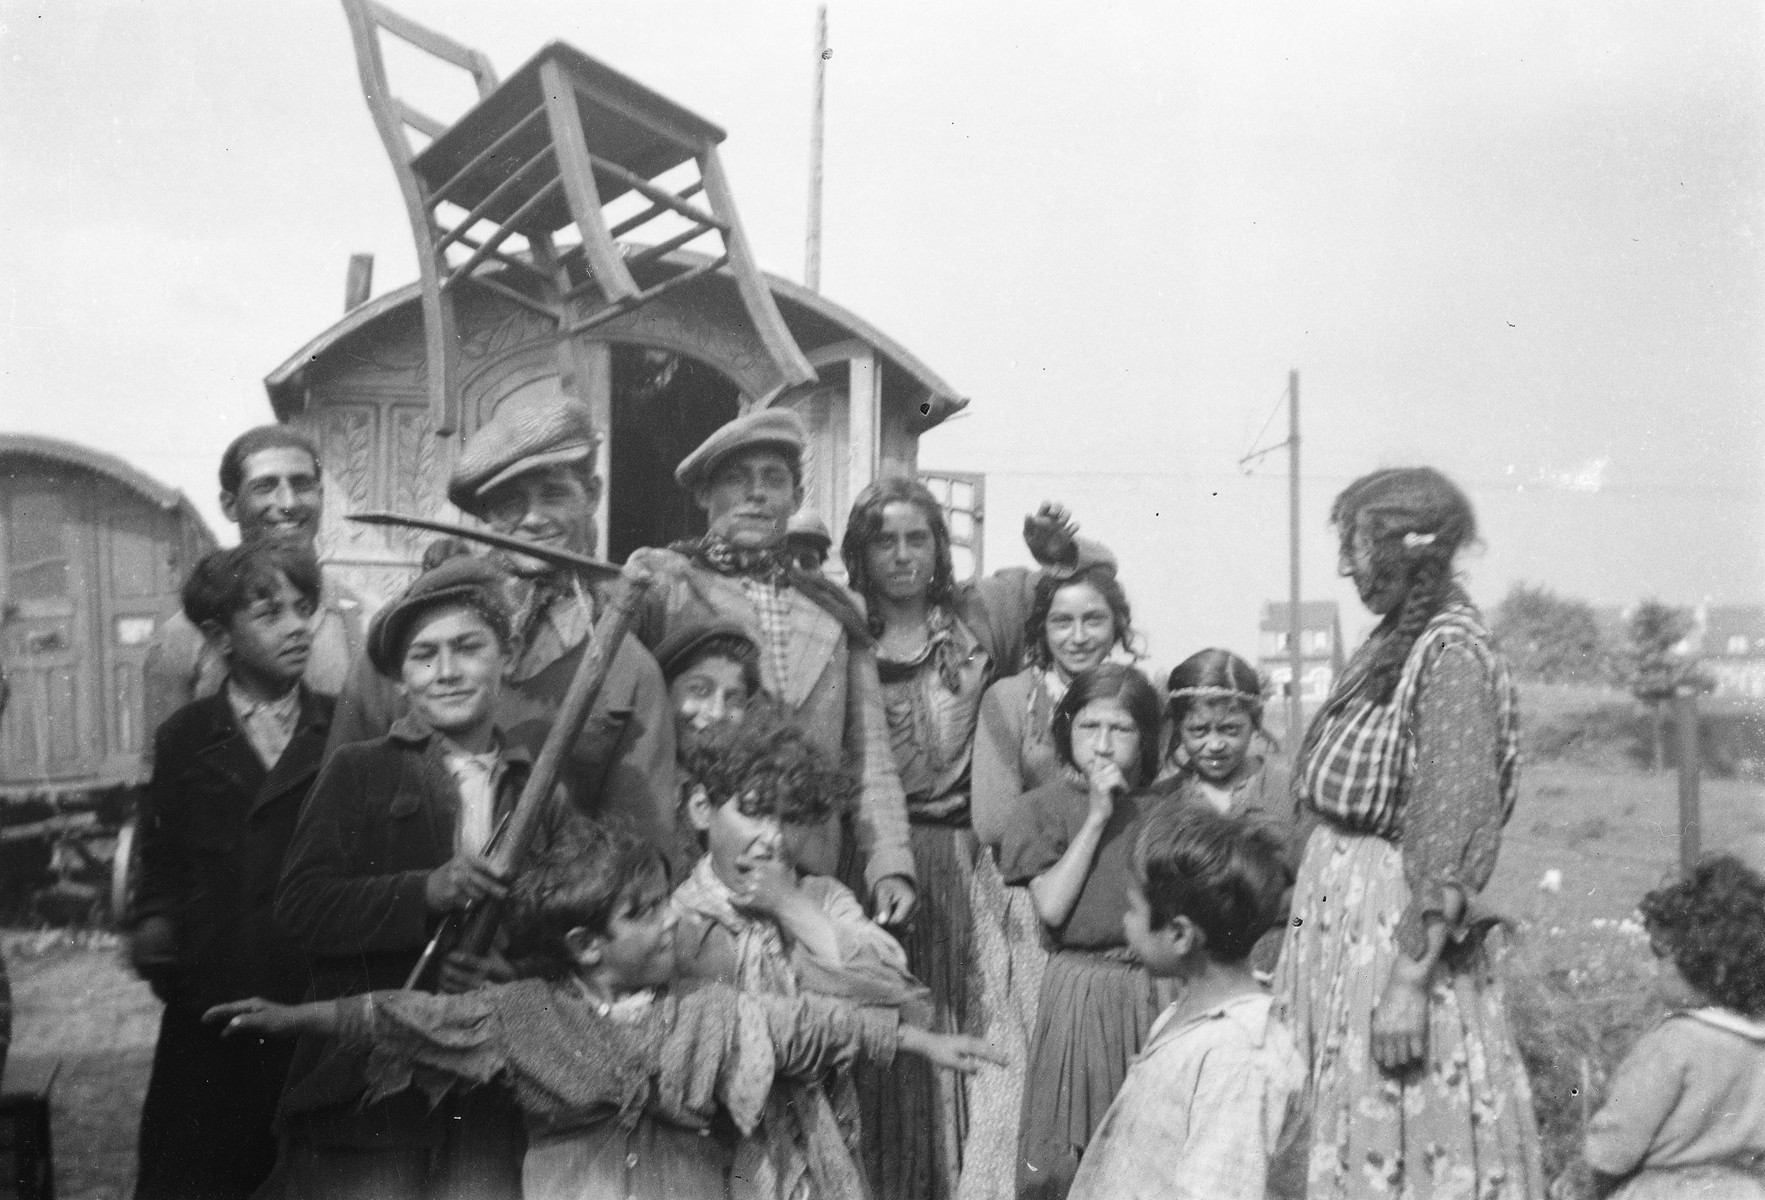 A group of Roma (Gypsies) in front of their caravan.  A child with arms outstretched playfully blocks the way, and a chair is balanced aloft above the group.